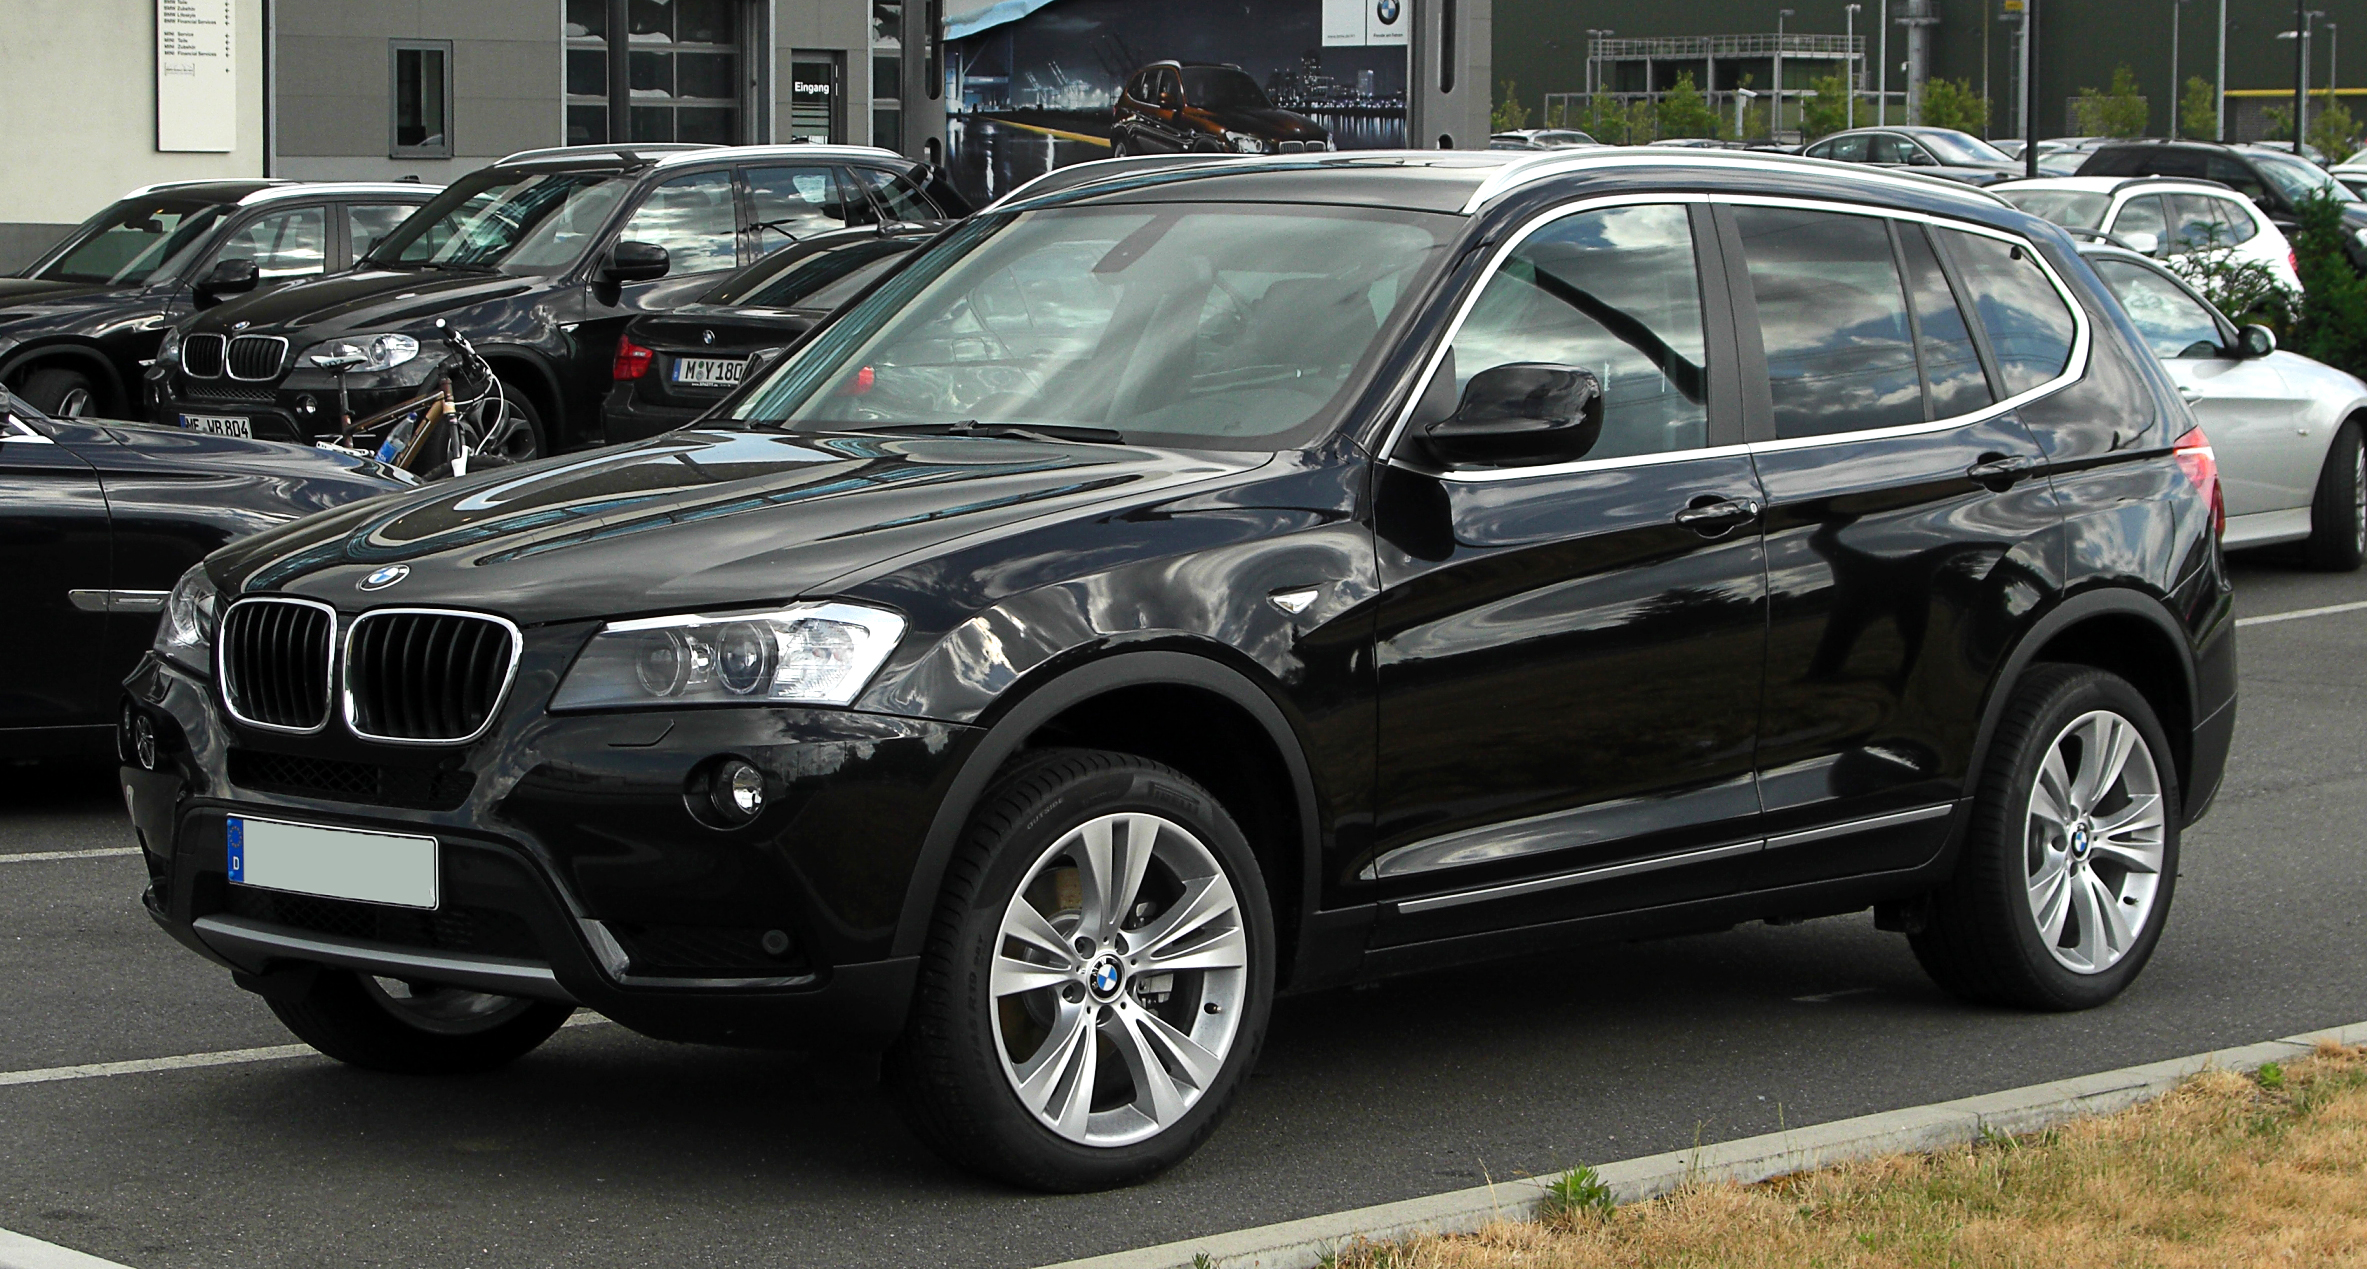 Pictures of bmw x3 #3